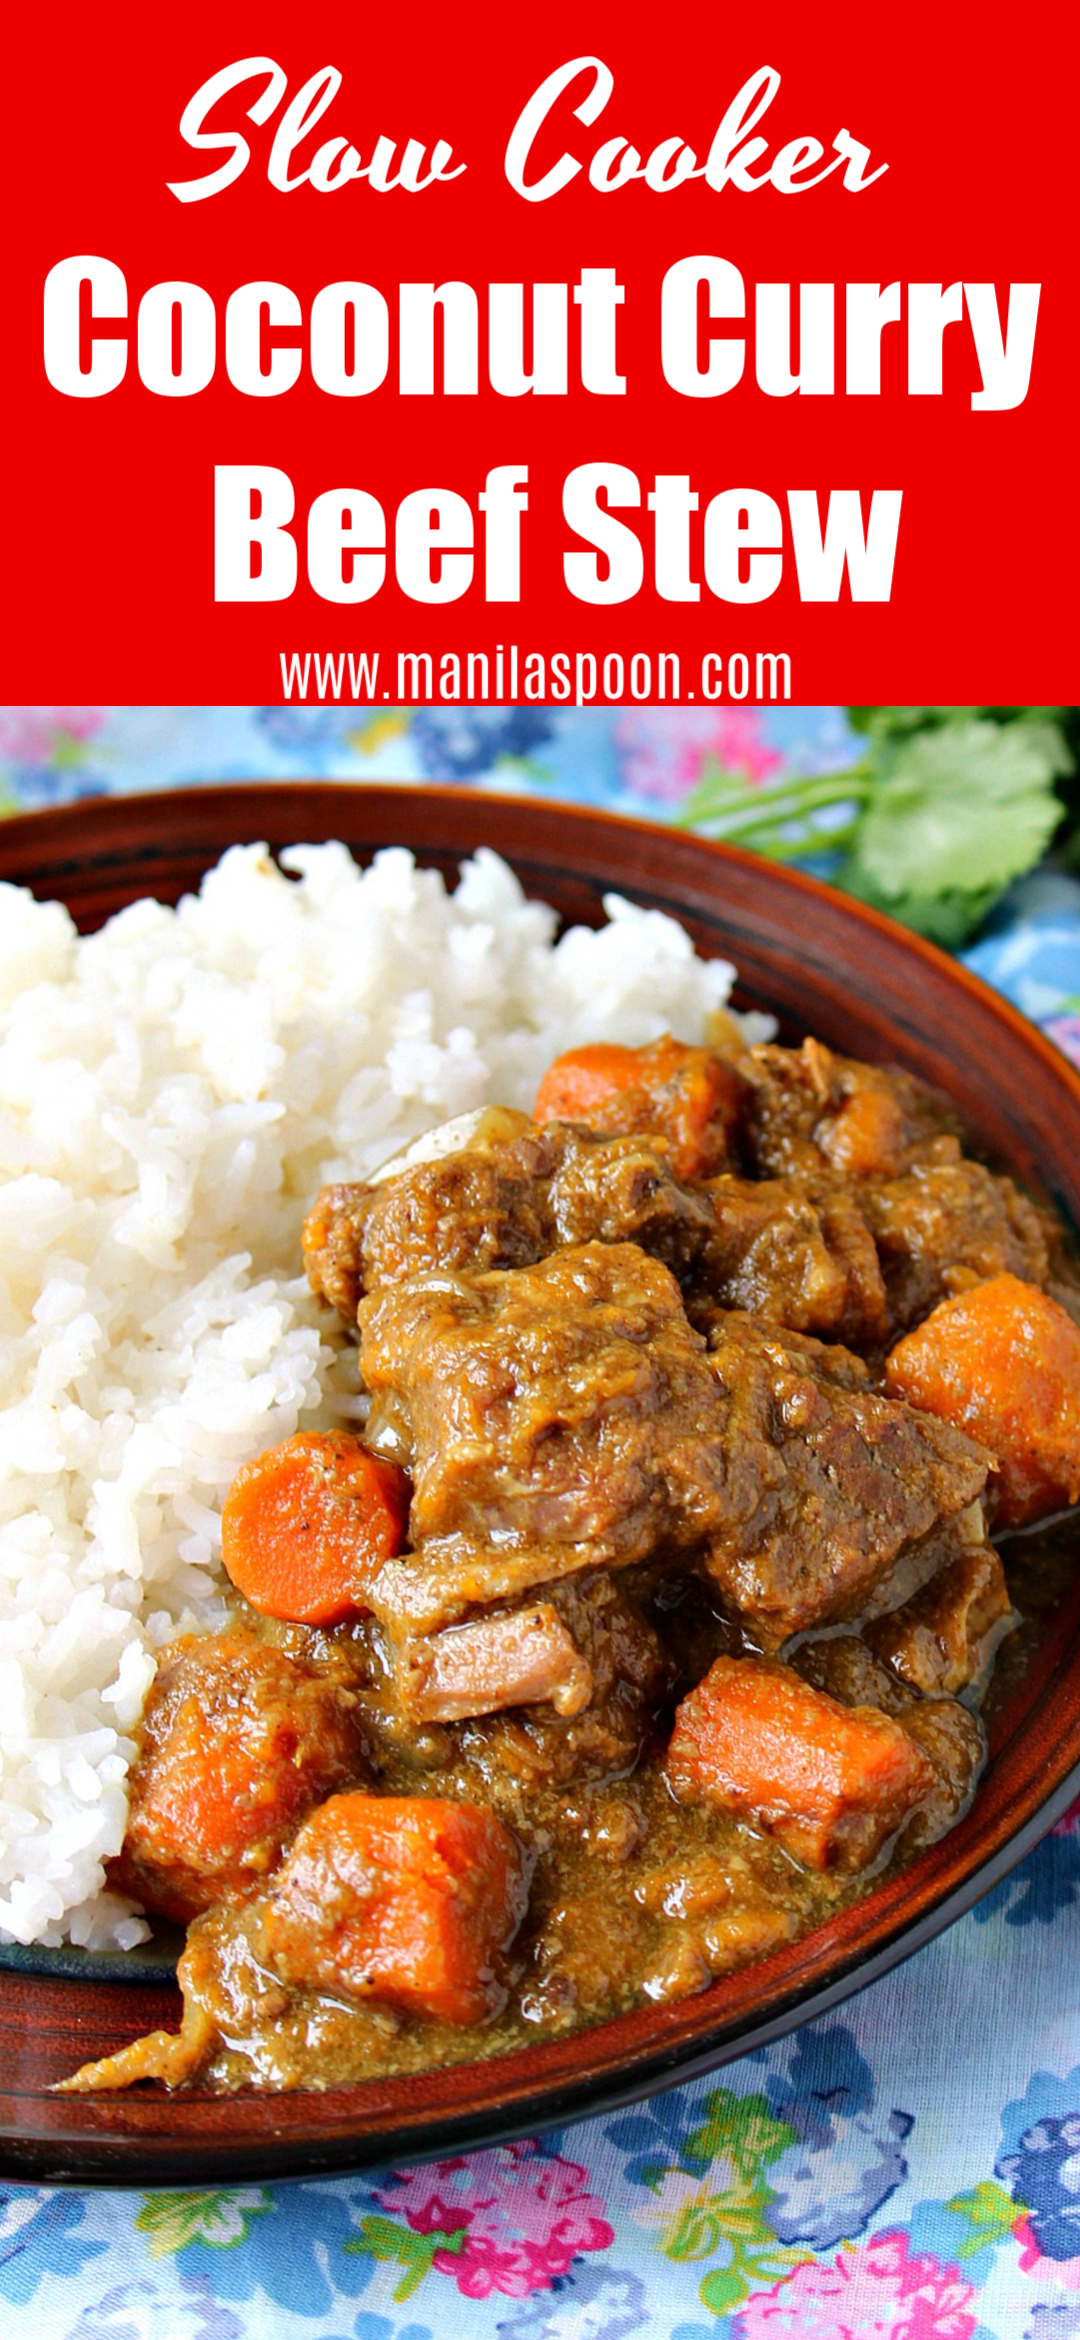 Coconut Curry Beef Stew